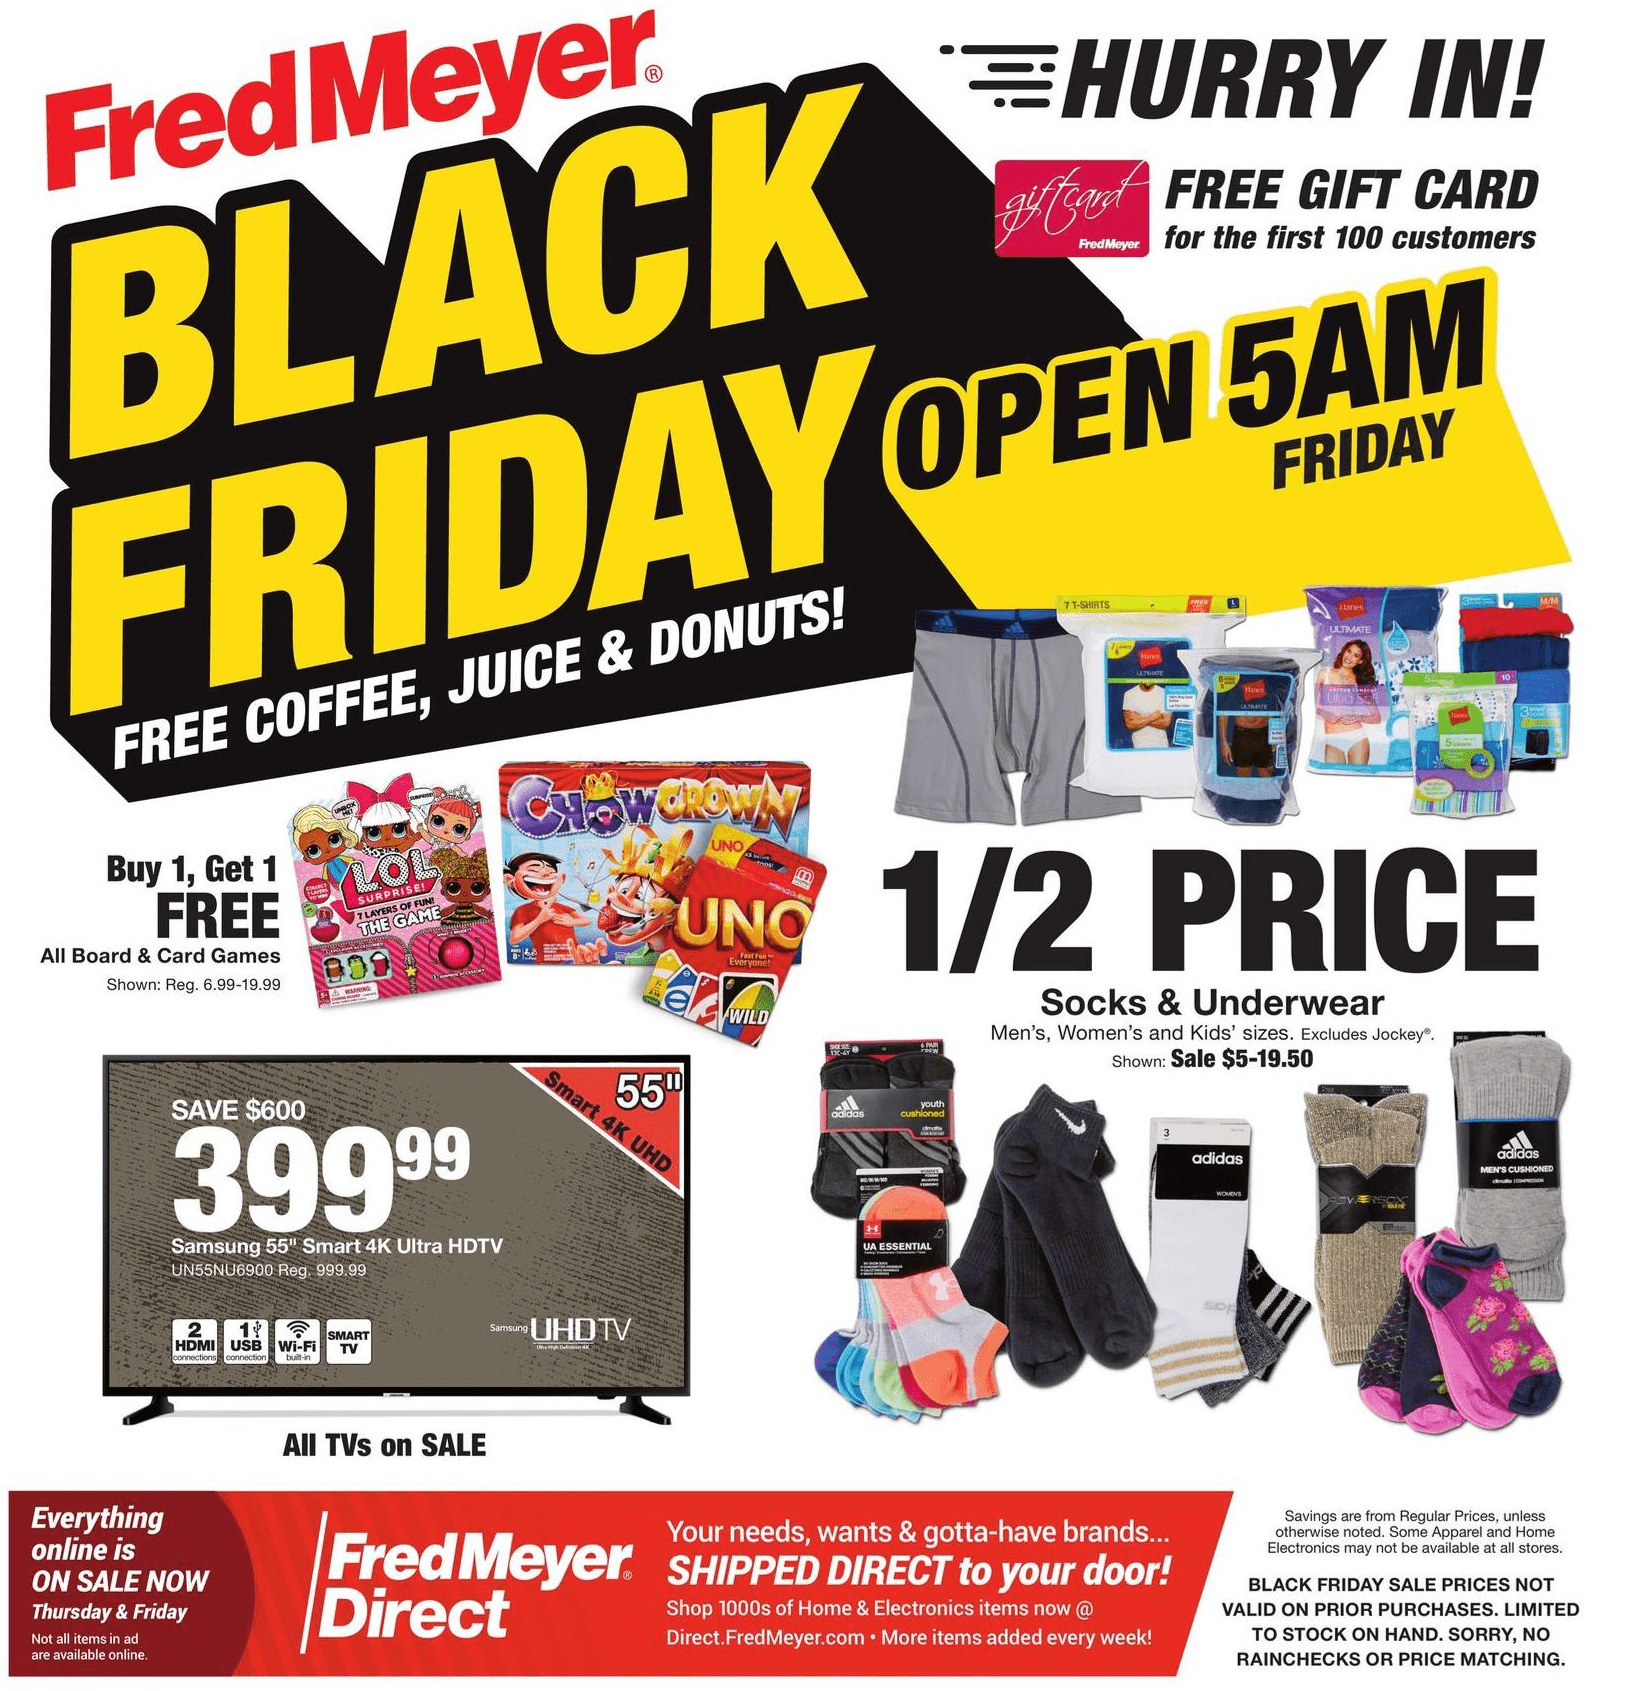 Fred Meyer Black Friday Deals For 2018 1 2 Price Socks